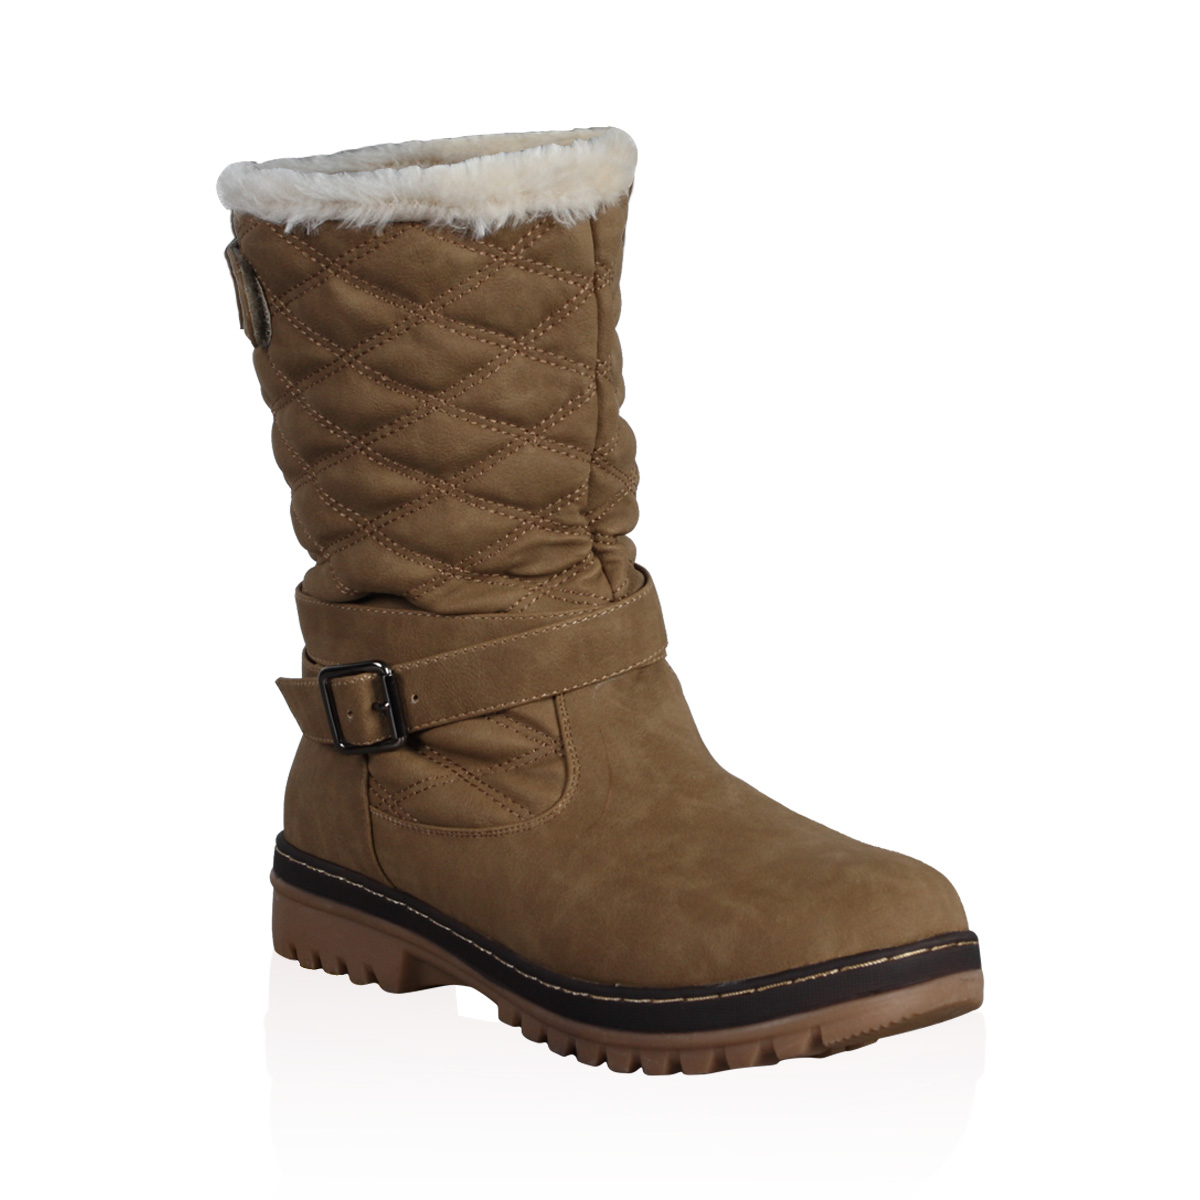 DD15 WOMENS QUILTED LADIES FAUX FUR GRIP SOLE WINTER SNOW